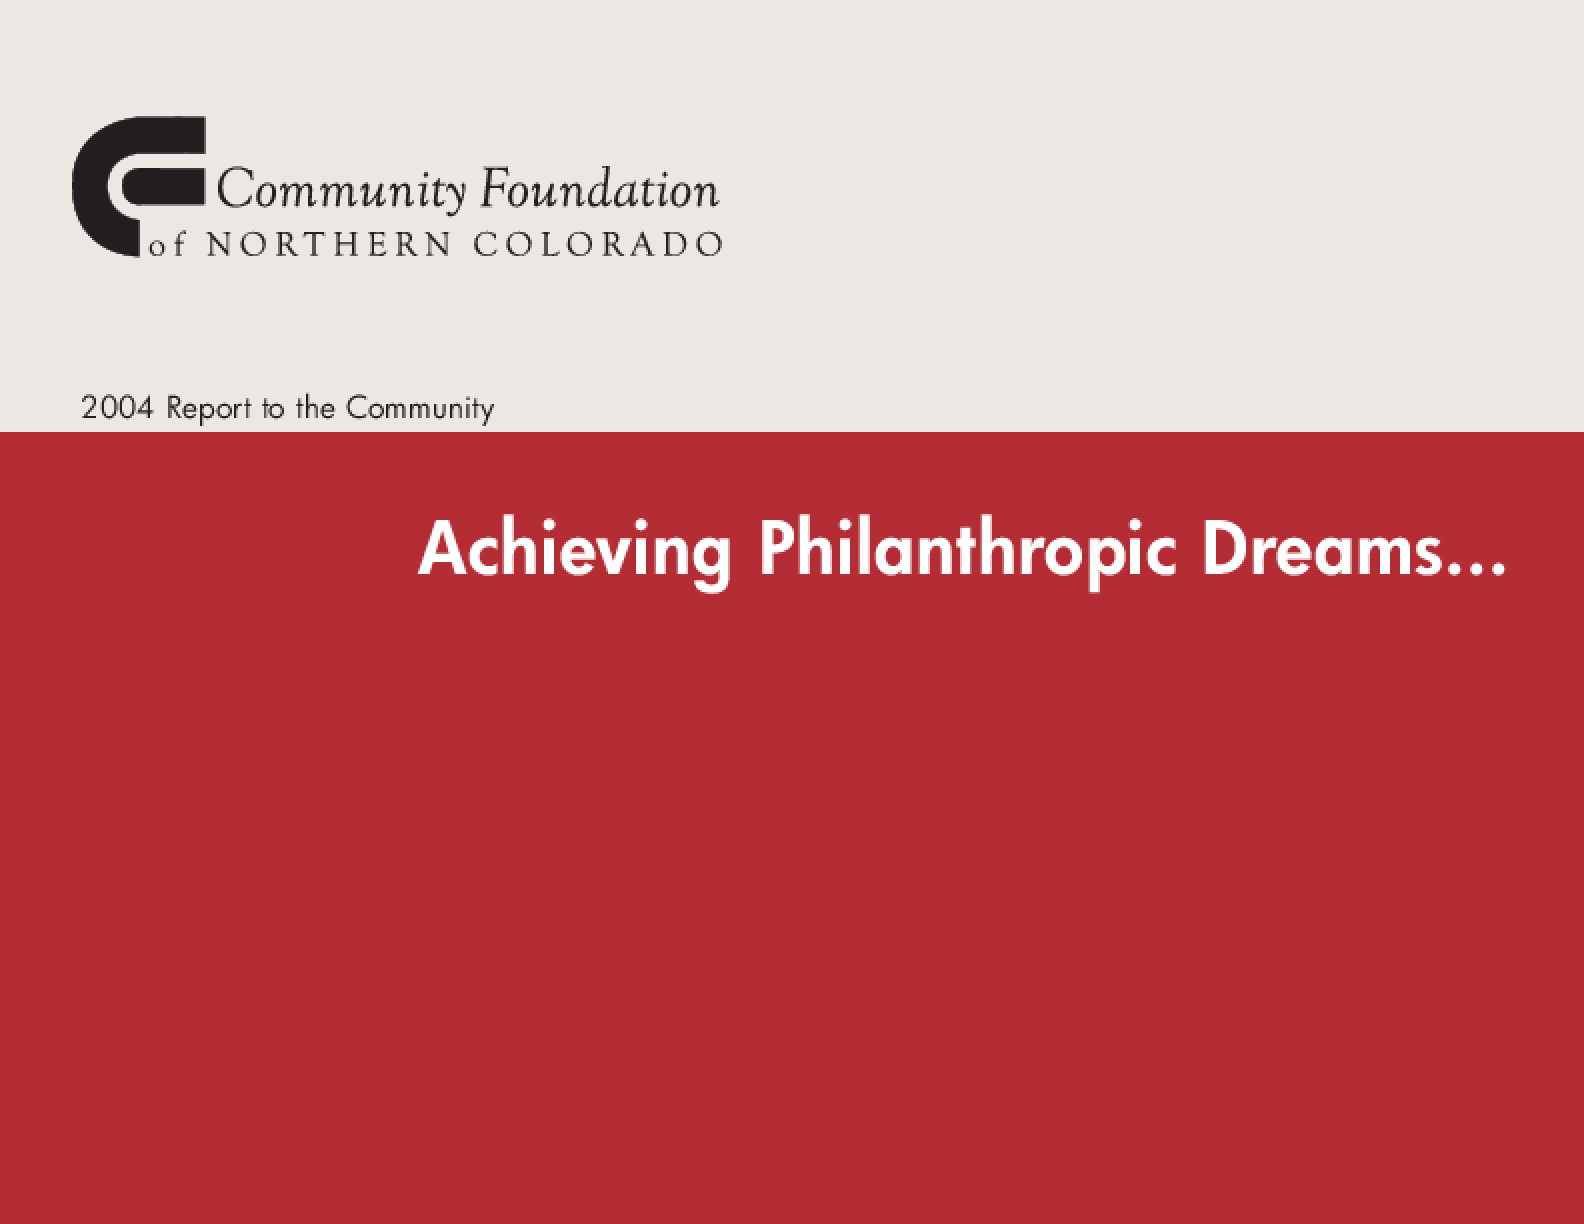 Community Foundation of Northern Colorado - 2004 Annual Report: Achieving Philanthropic Dreams ...